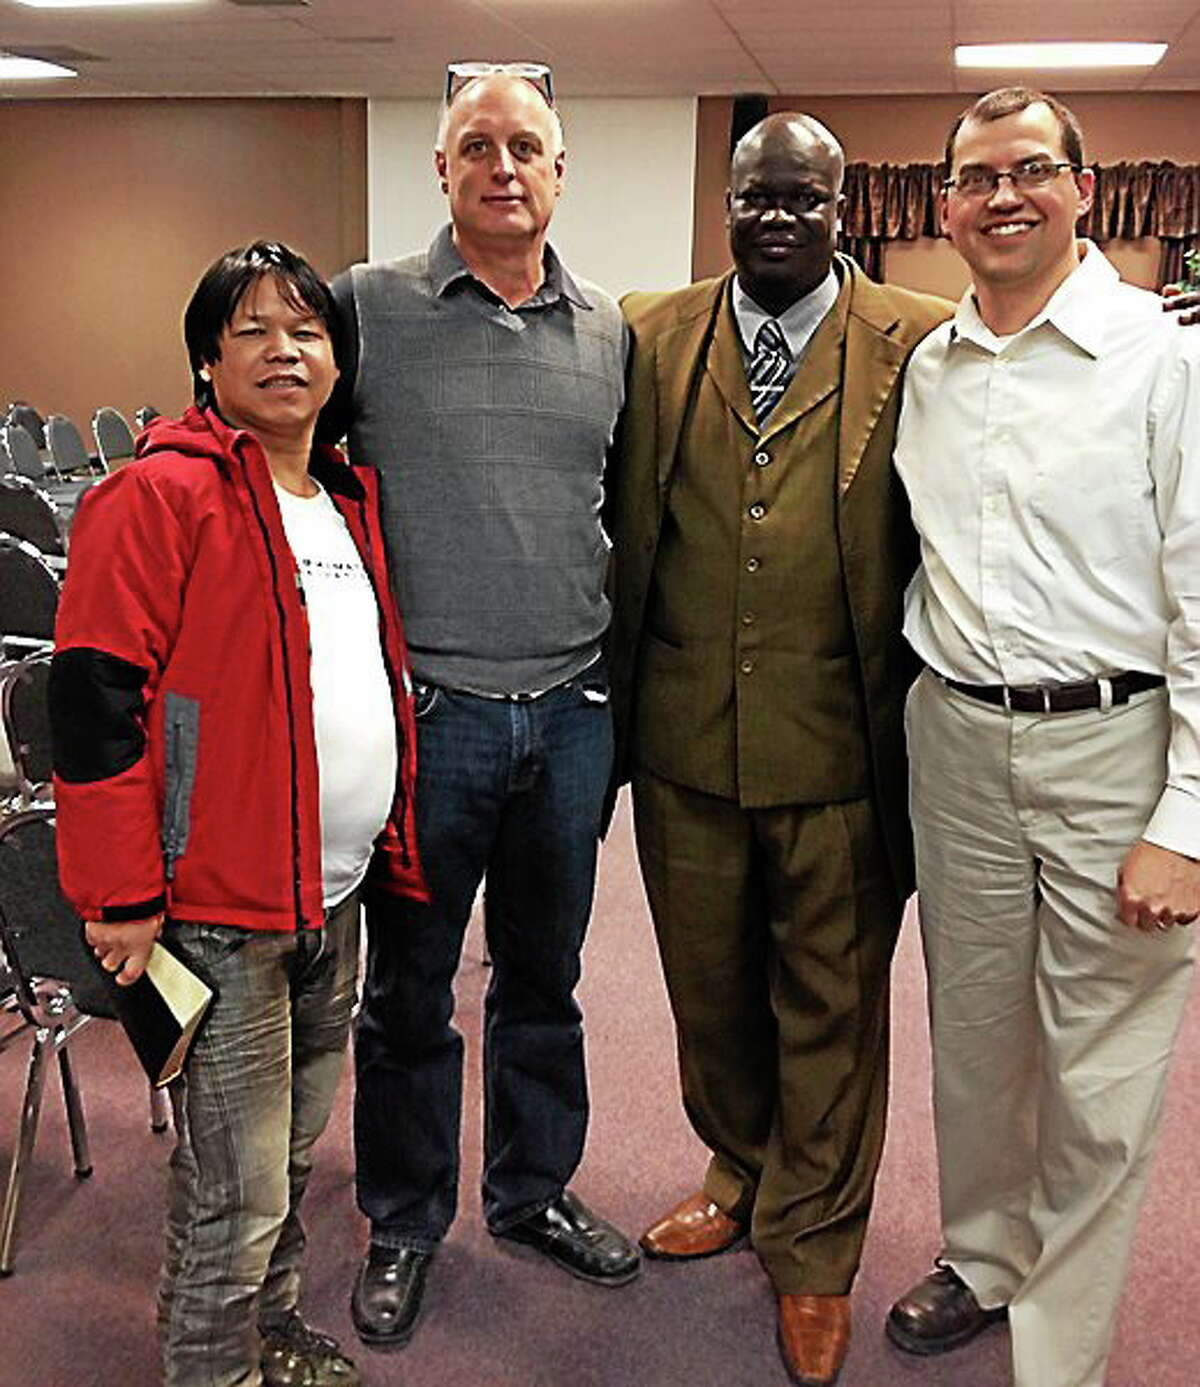 Left to right, Deepak Gerung, lead pastor of Emmanuel International Church; Kevin Zaun, lead pastor of Heartland Community Church; Paul Agamiri, lead pastor of All Nations Assembly of God; and Shawn Stoll, assistant pastor of All Nations Assembly of God, stand together at Heartland Community Church.